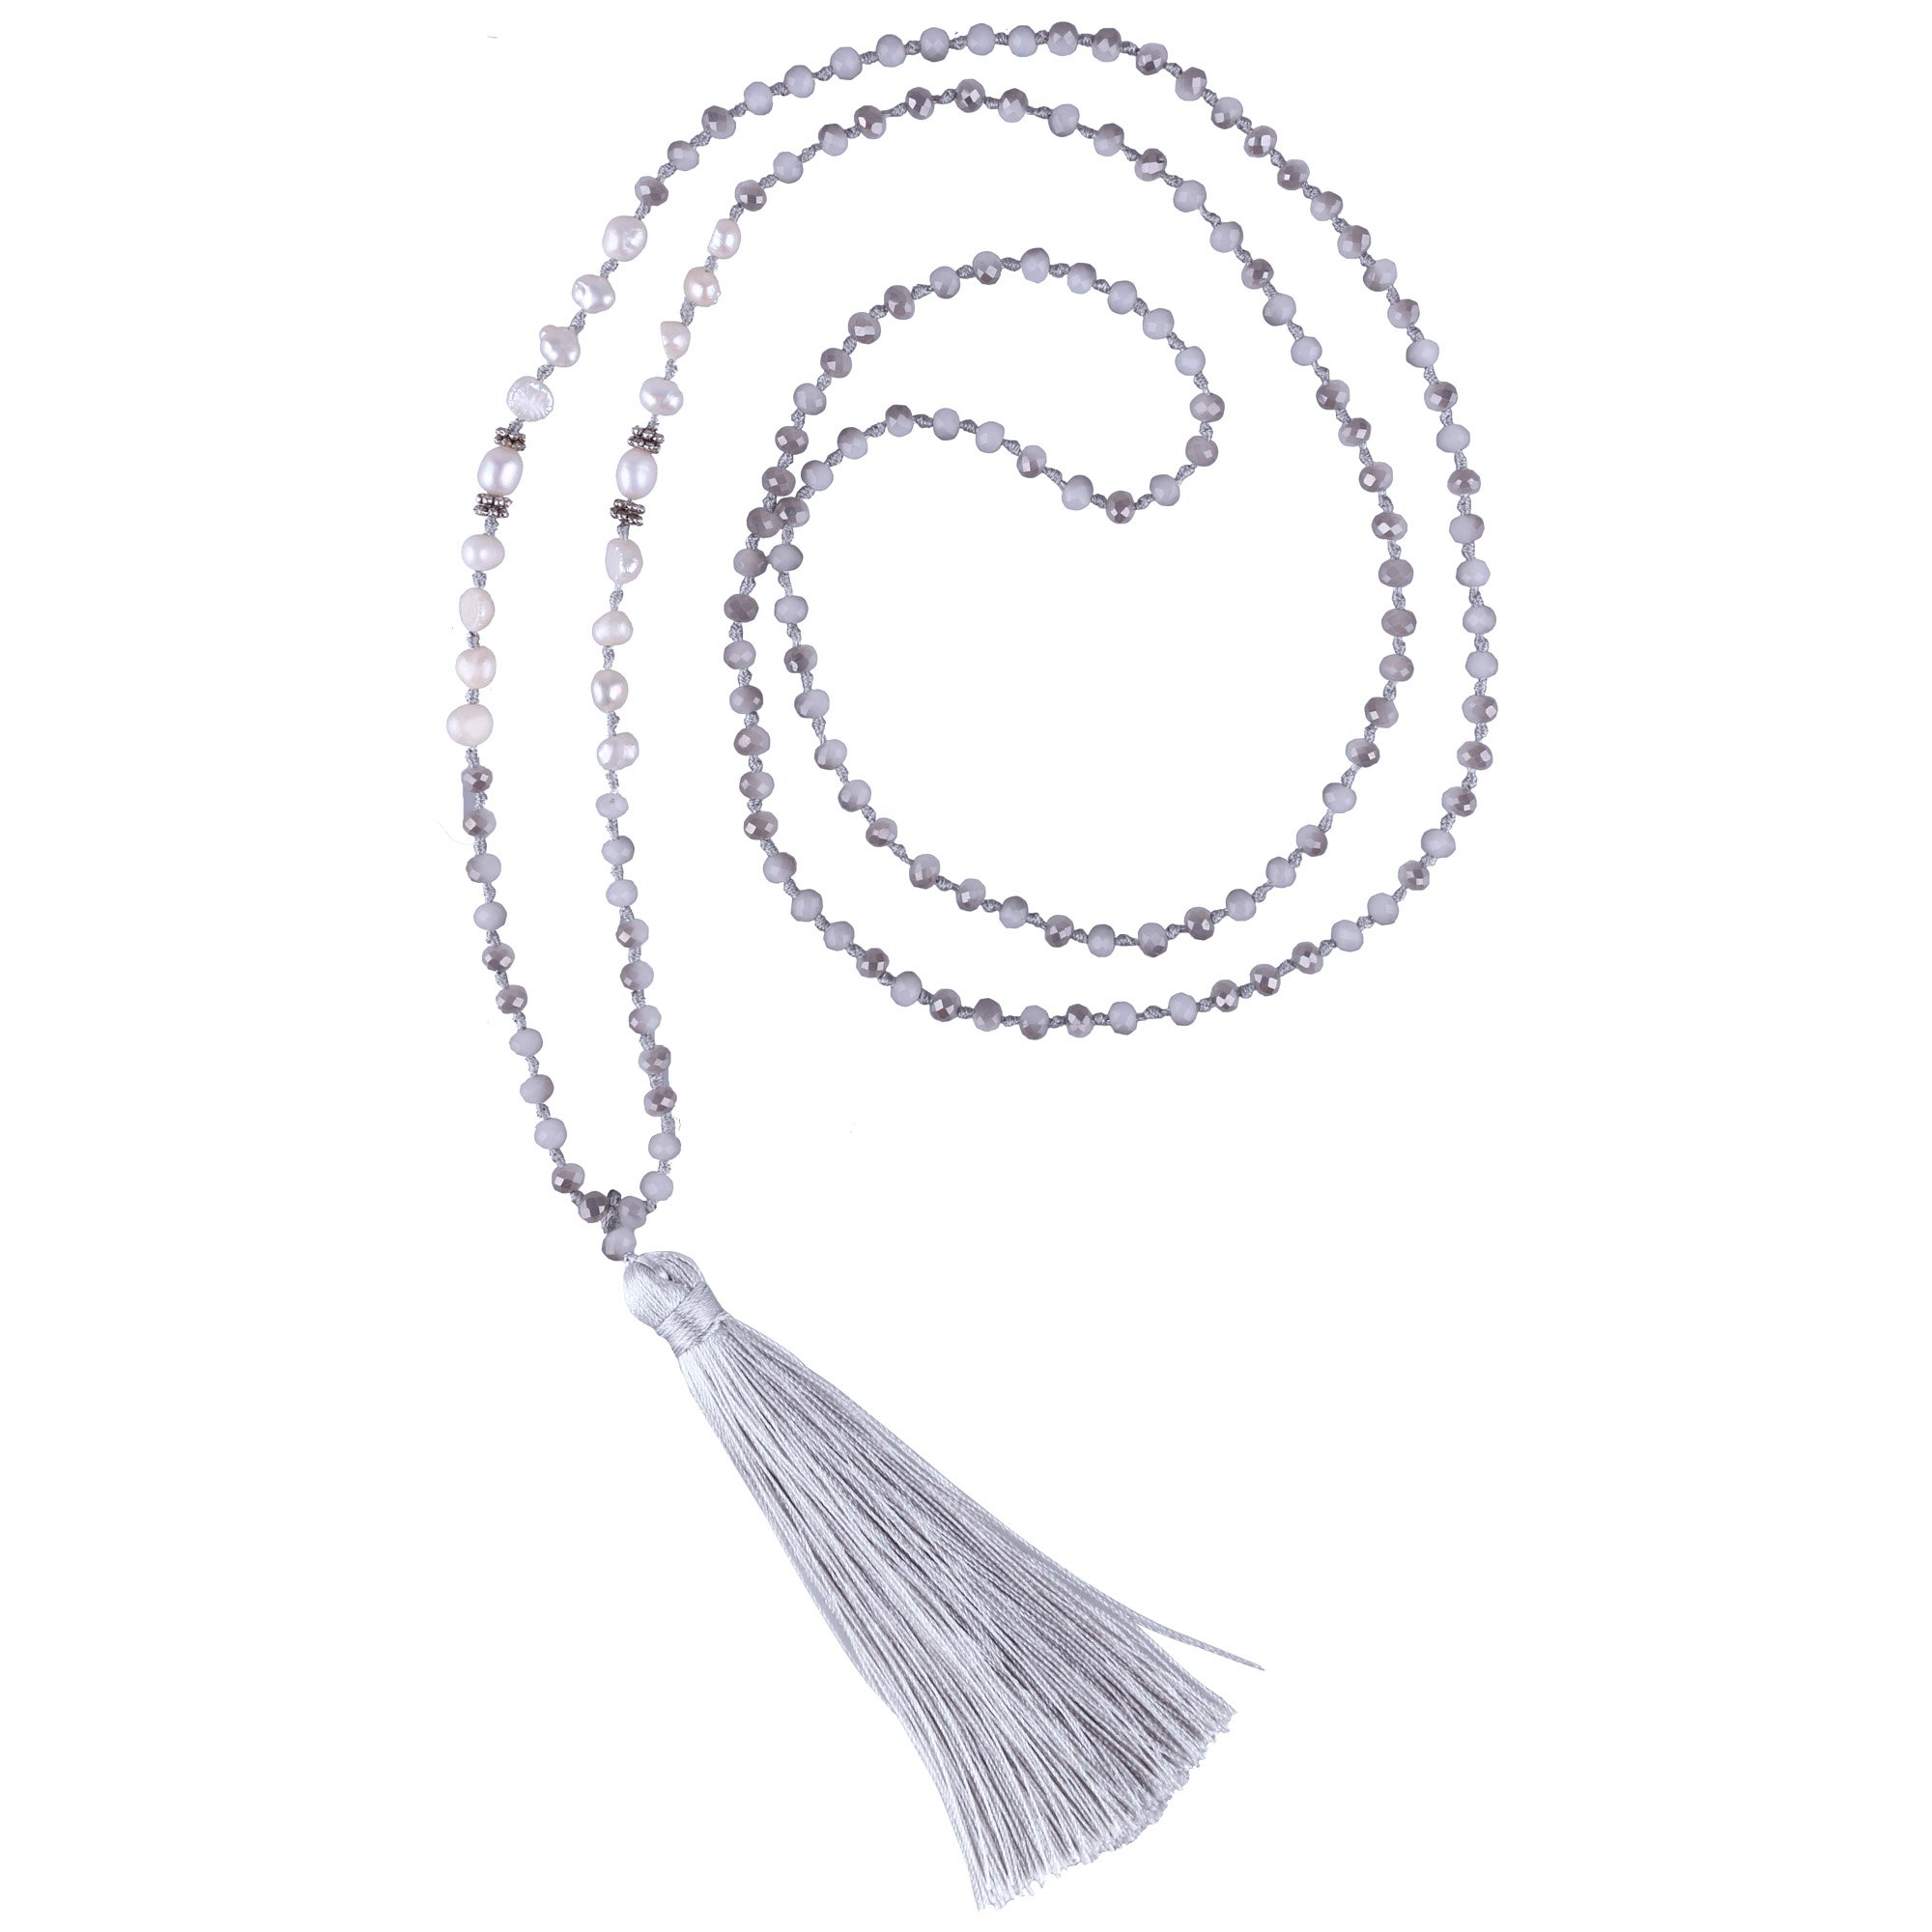 C·QUAN CHI Long Chain Tassel Necklace Handmade Natural Pearl Crystal Beaded Pendant Bohemian Women Statement Jewelry Women Gifts Girls